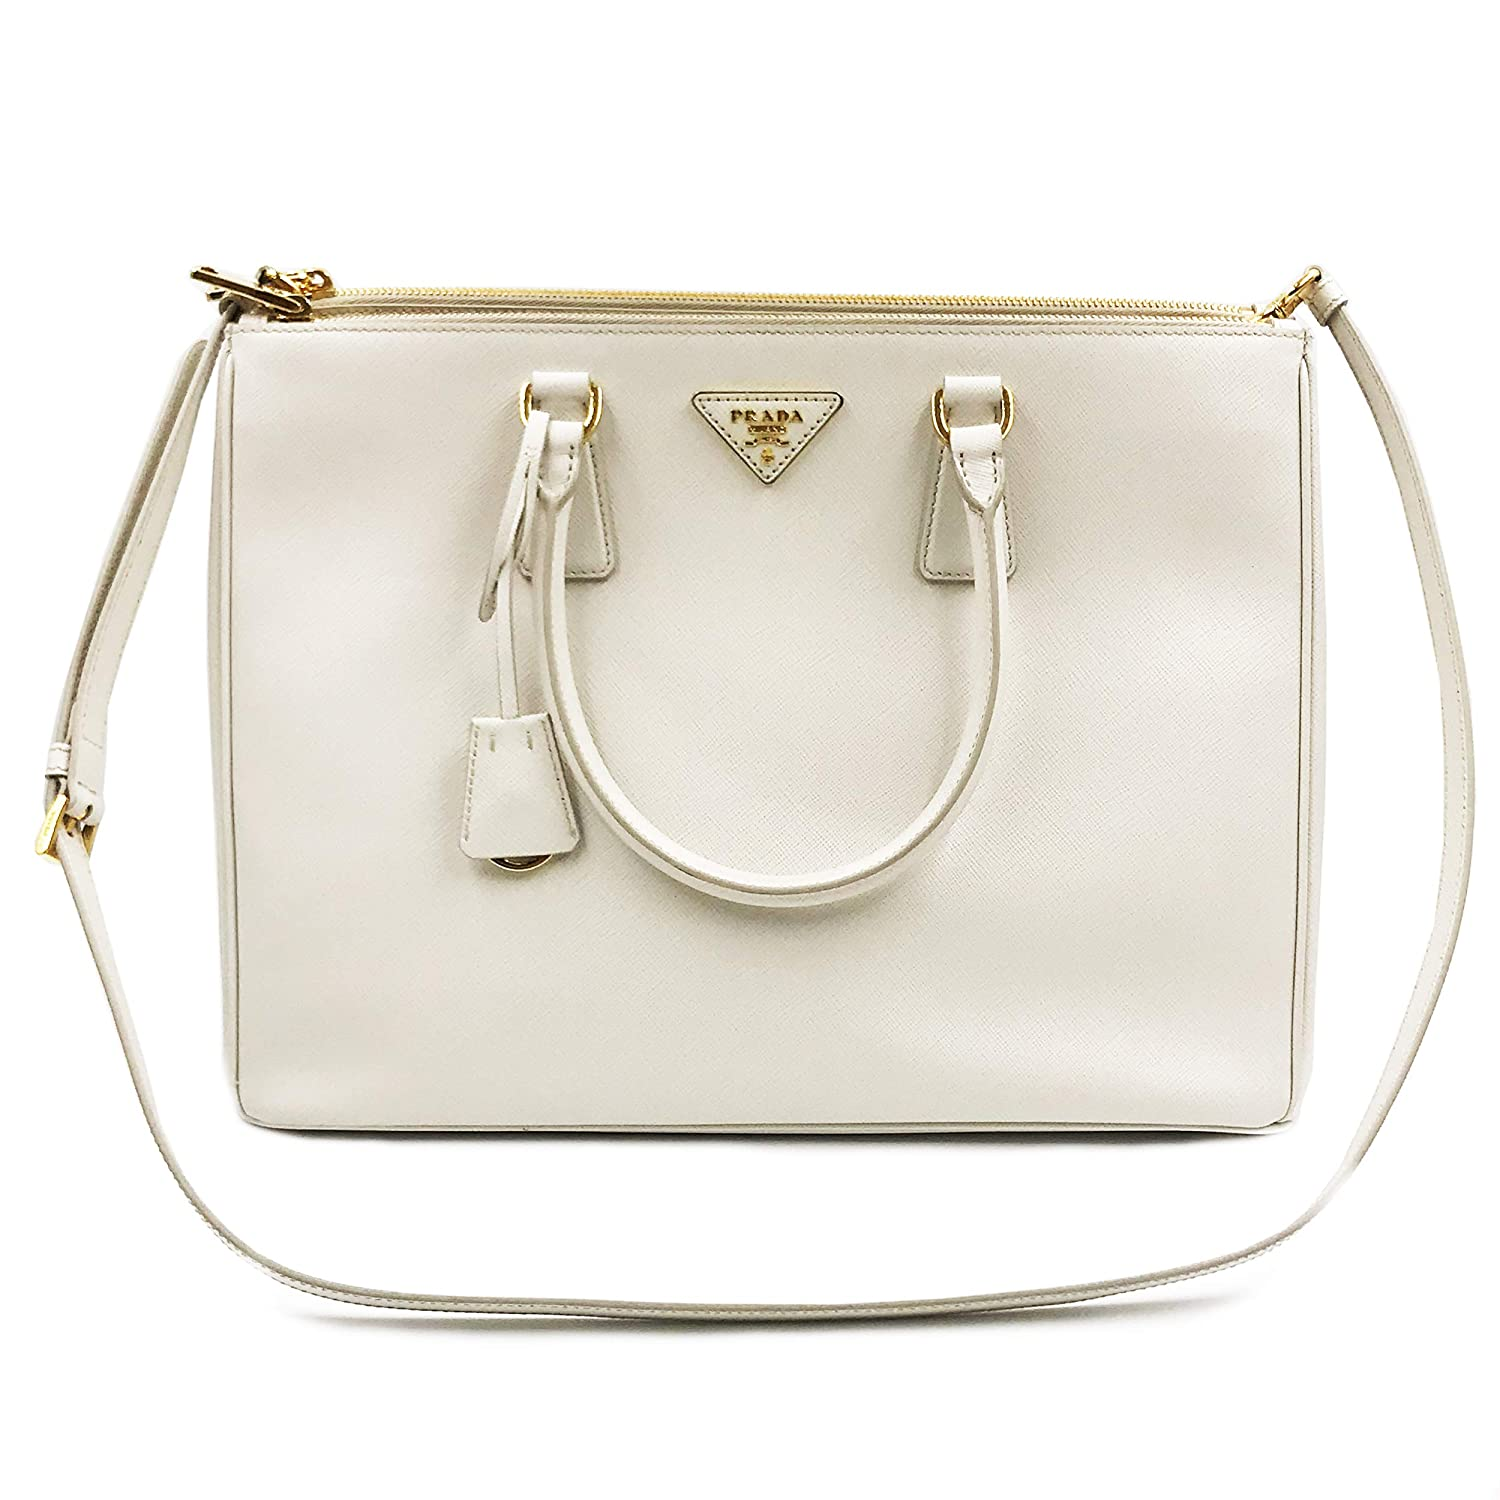 7ab1d144d3f444 ... italy prada saffiano lux galleria white leather ladies tote 1ba786nzv  at amazon womens clothing store 983cd